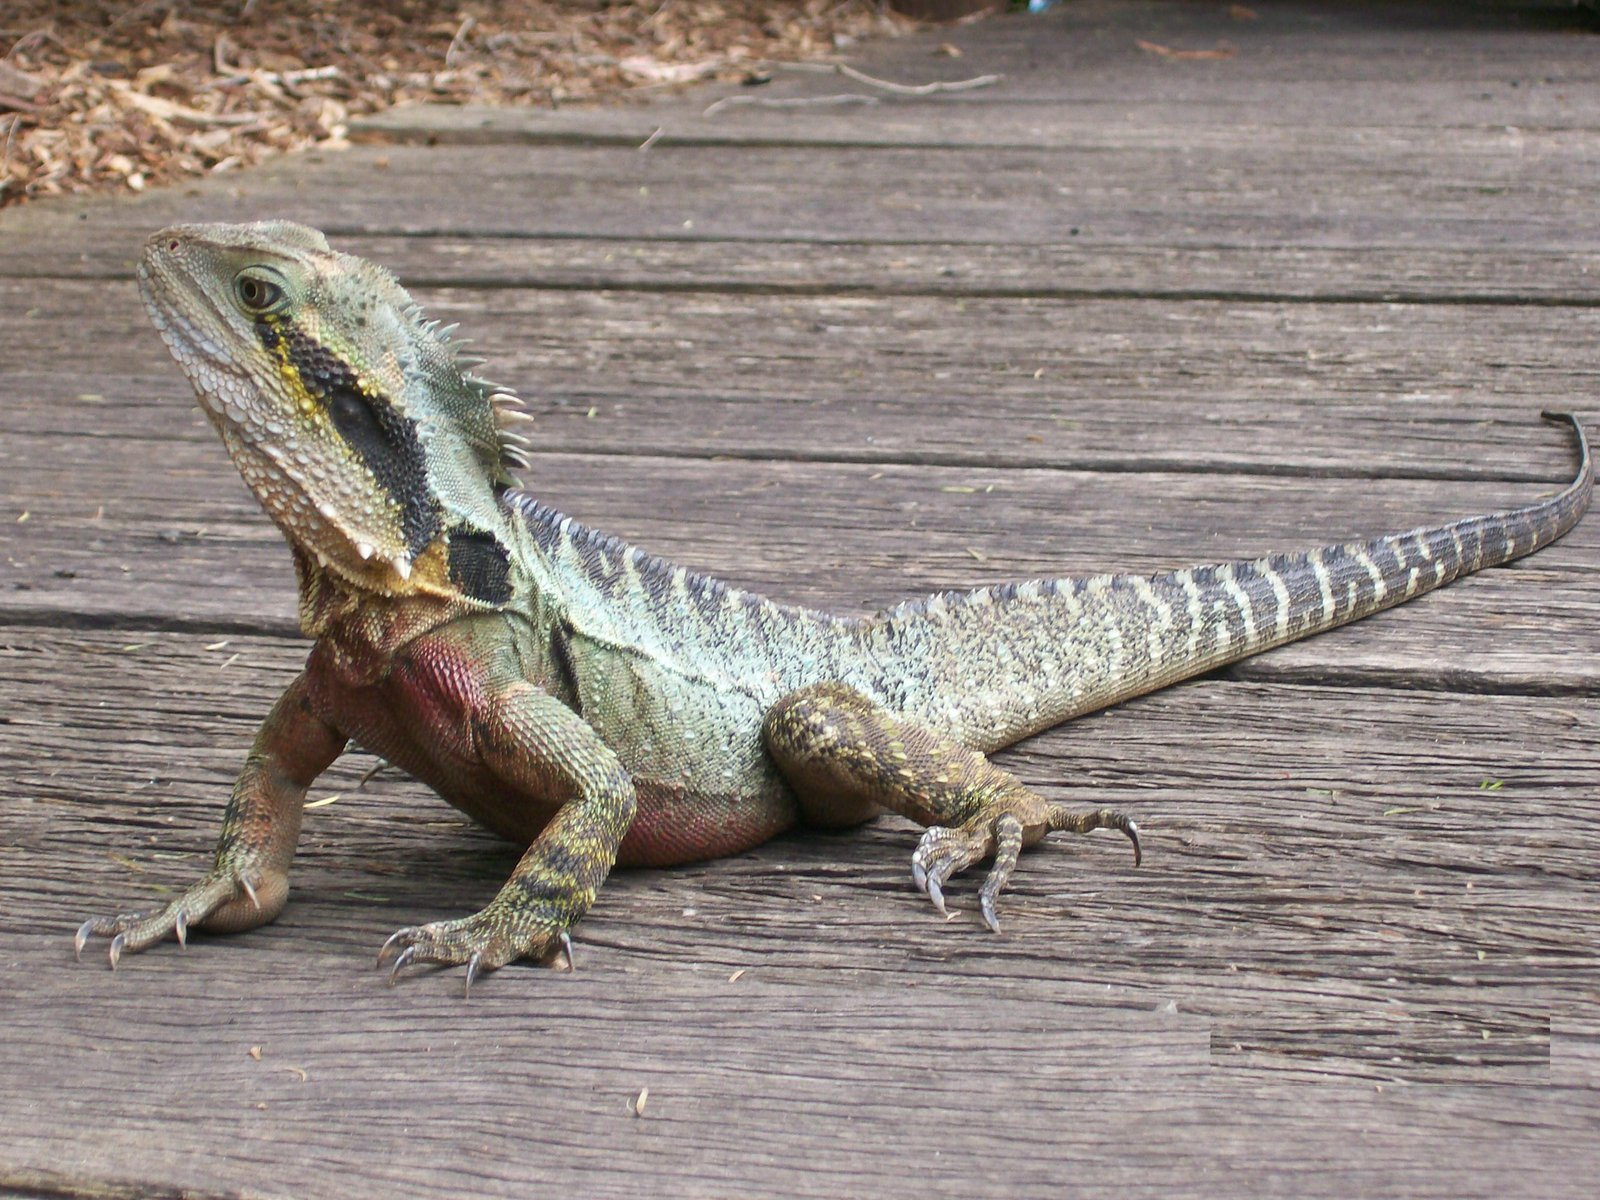 Male Eastern Water Dragon, Intellagama lesueurii lesueurii